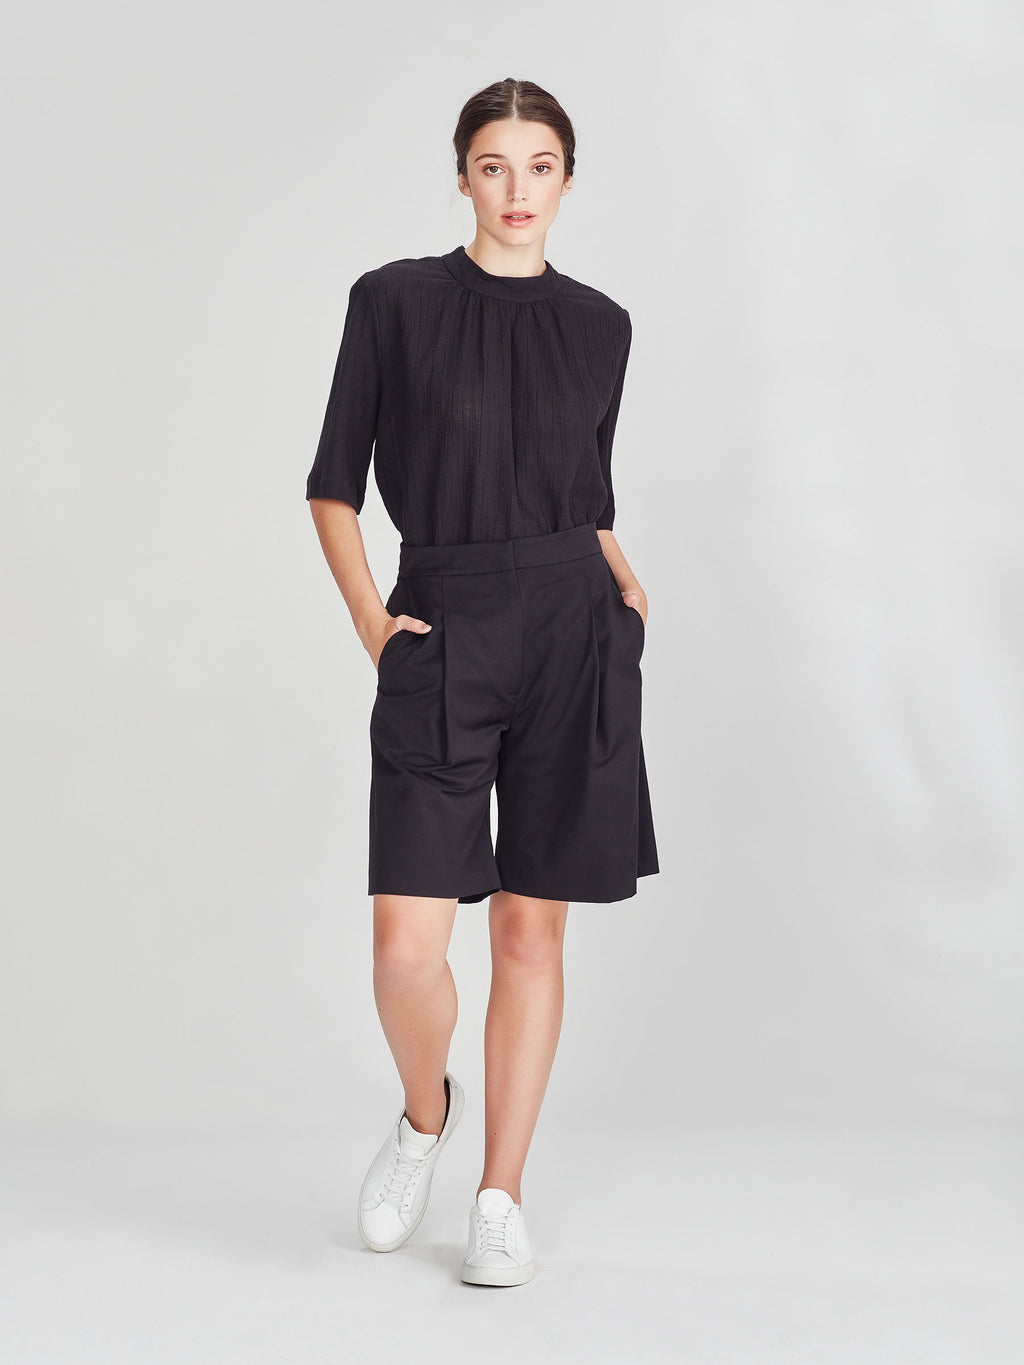 Cal Shorts (Luxe Suiting) Black